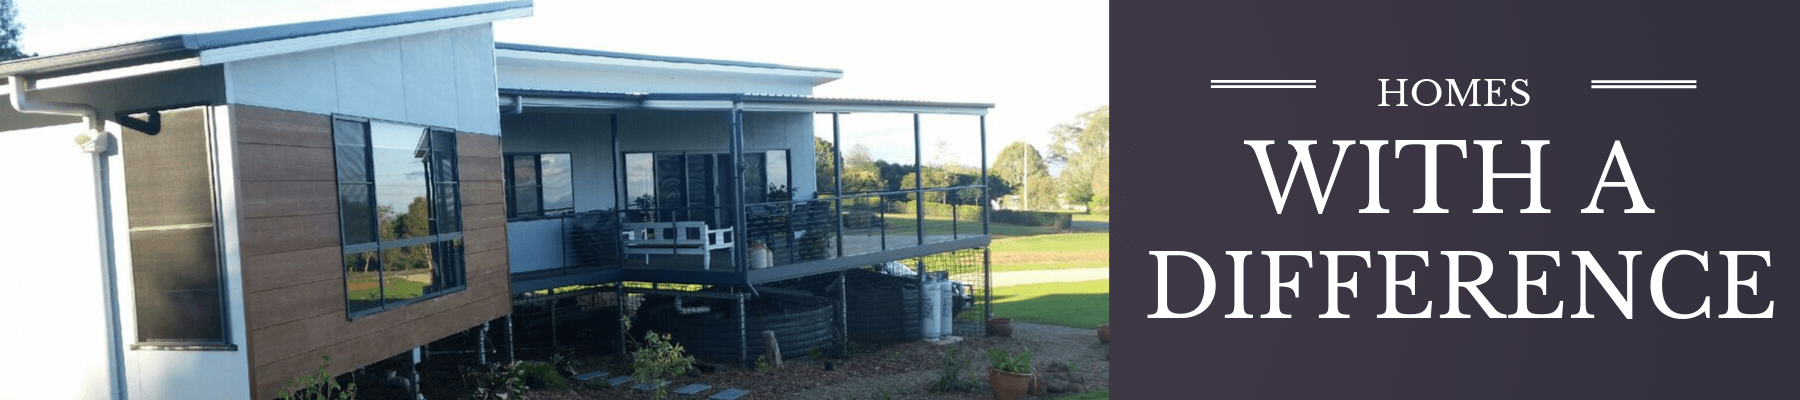 TJS - Contact us for your Custom Home Builder QLD Requirements